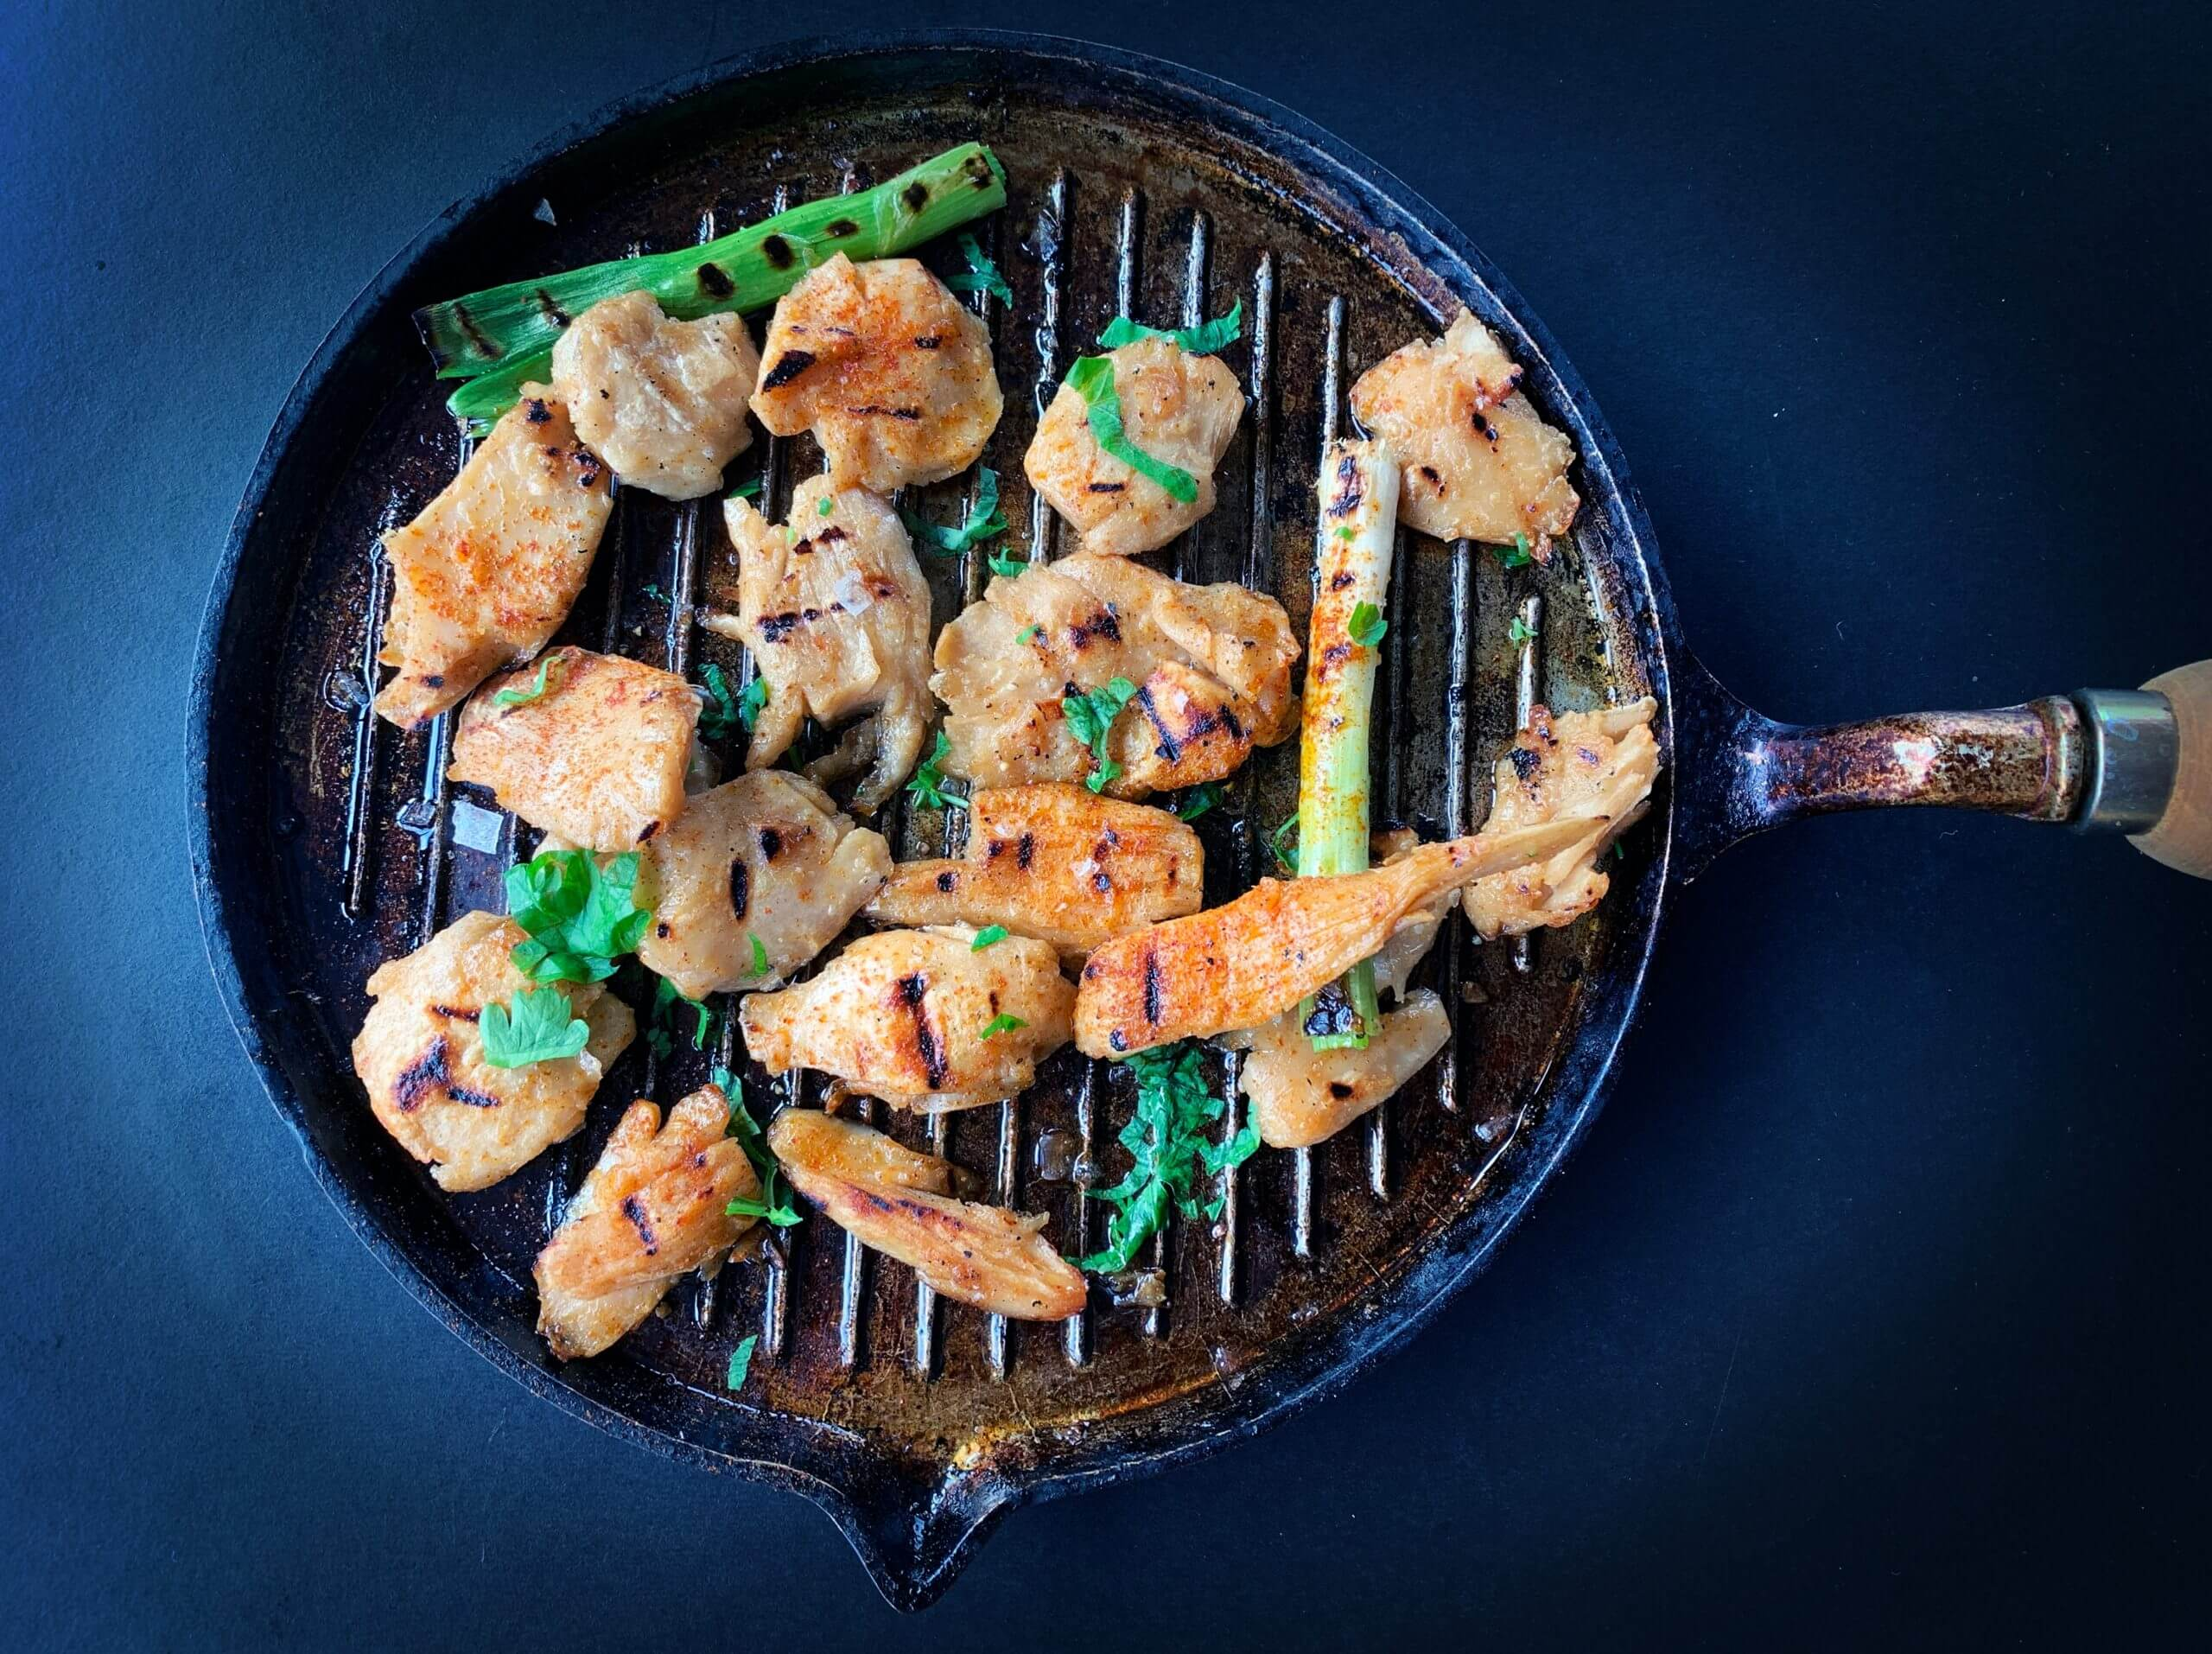 Griddle Pan Healthier Than A Frying Pan